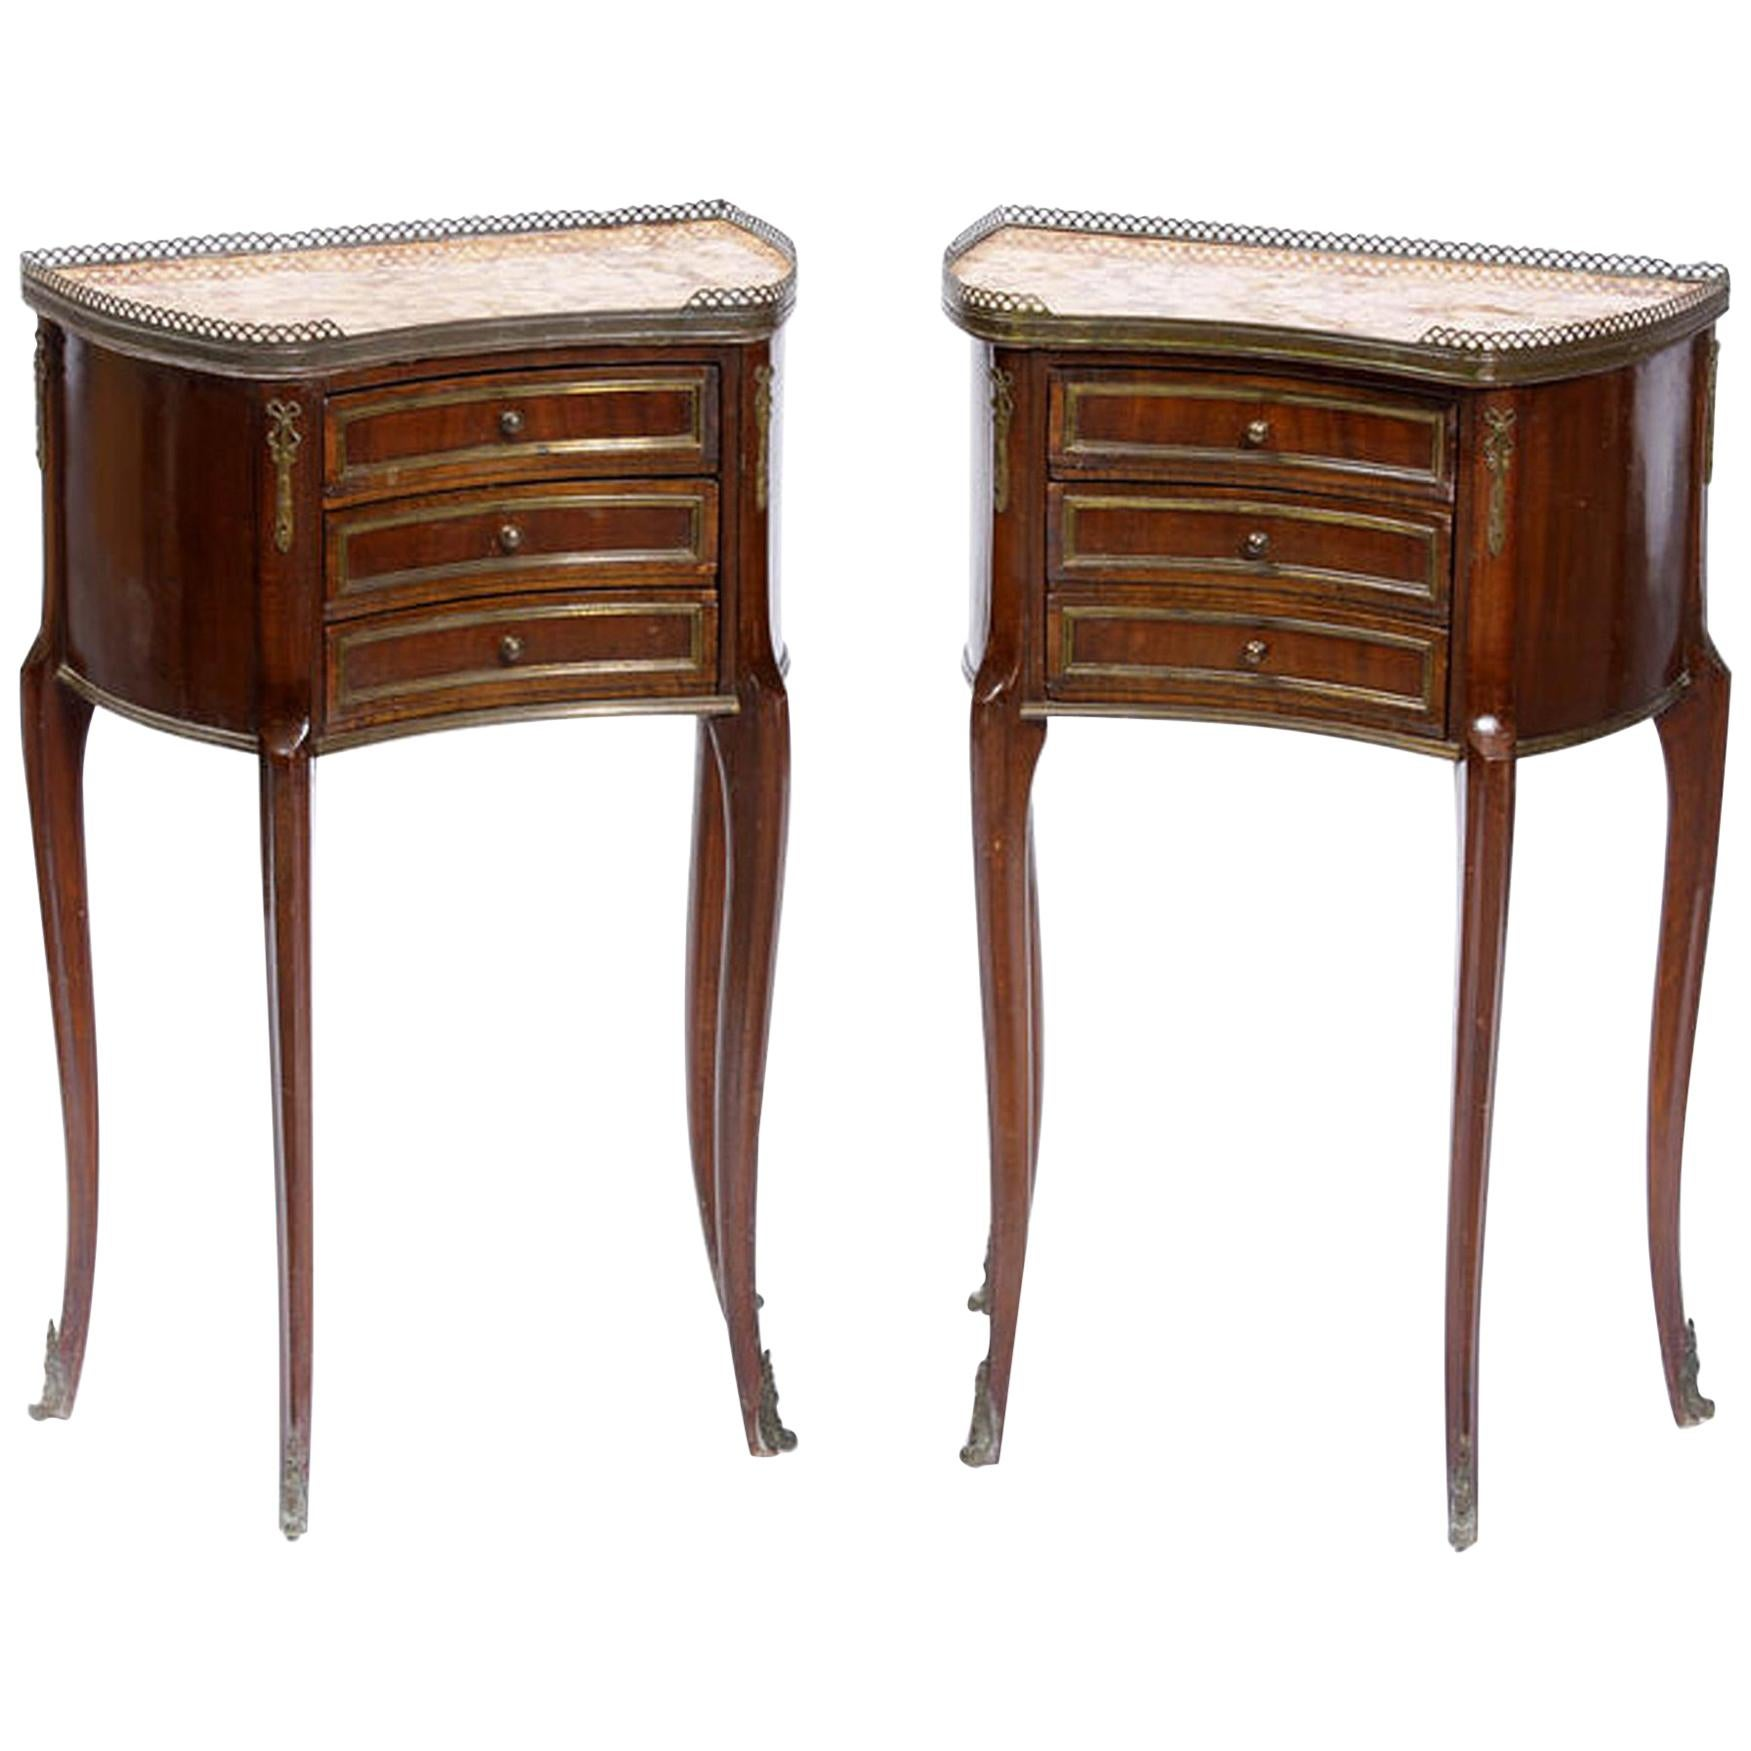 Pair of French Gilt Bronze Mounted Nightstands, 19th Century